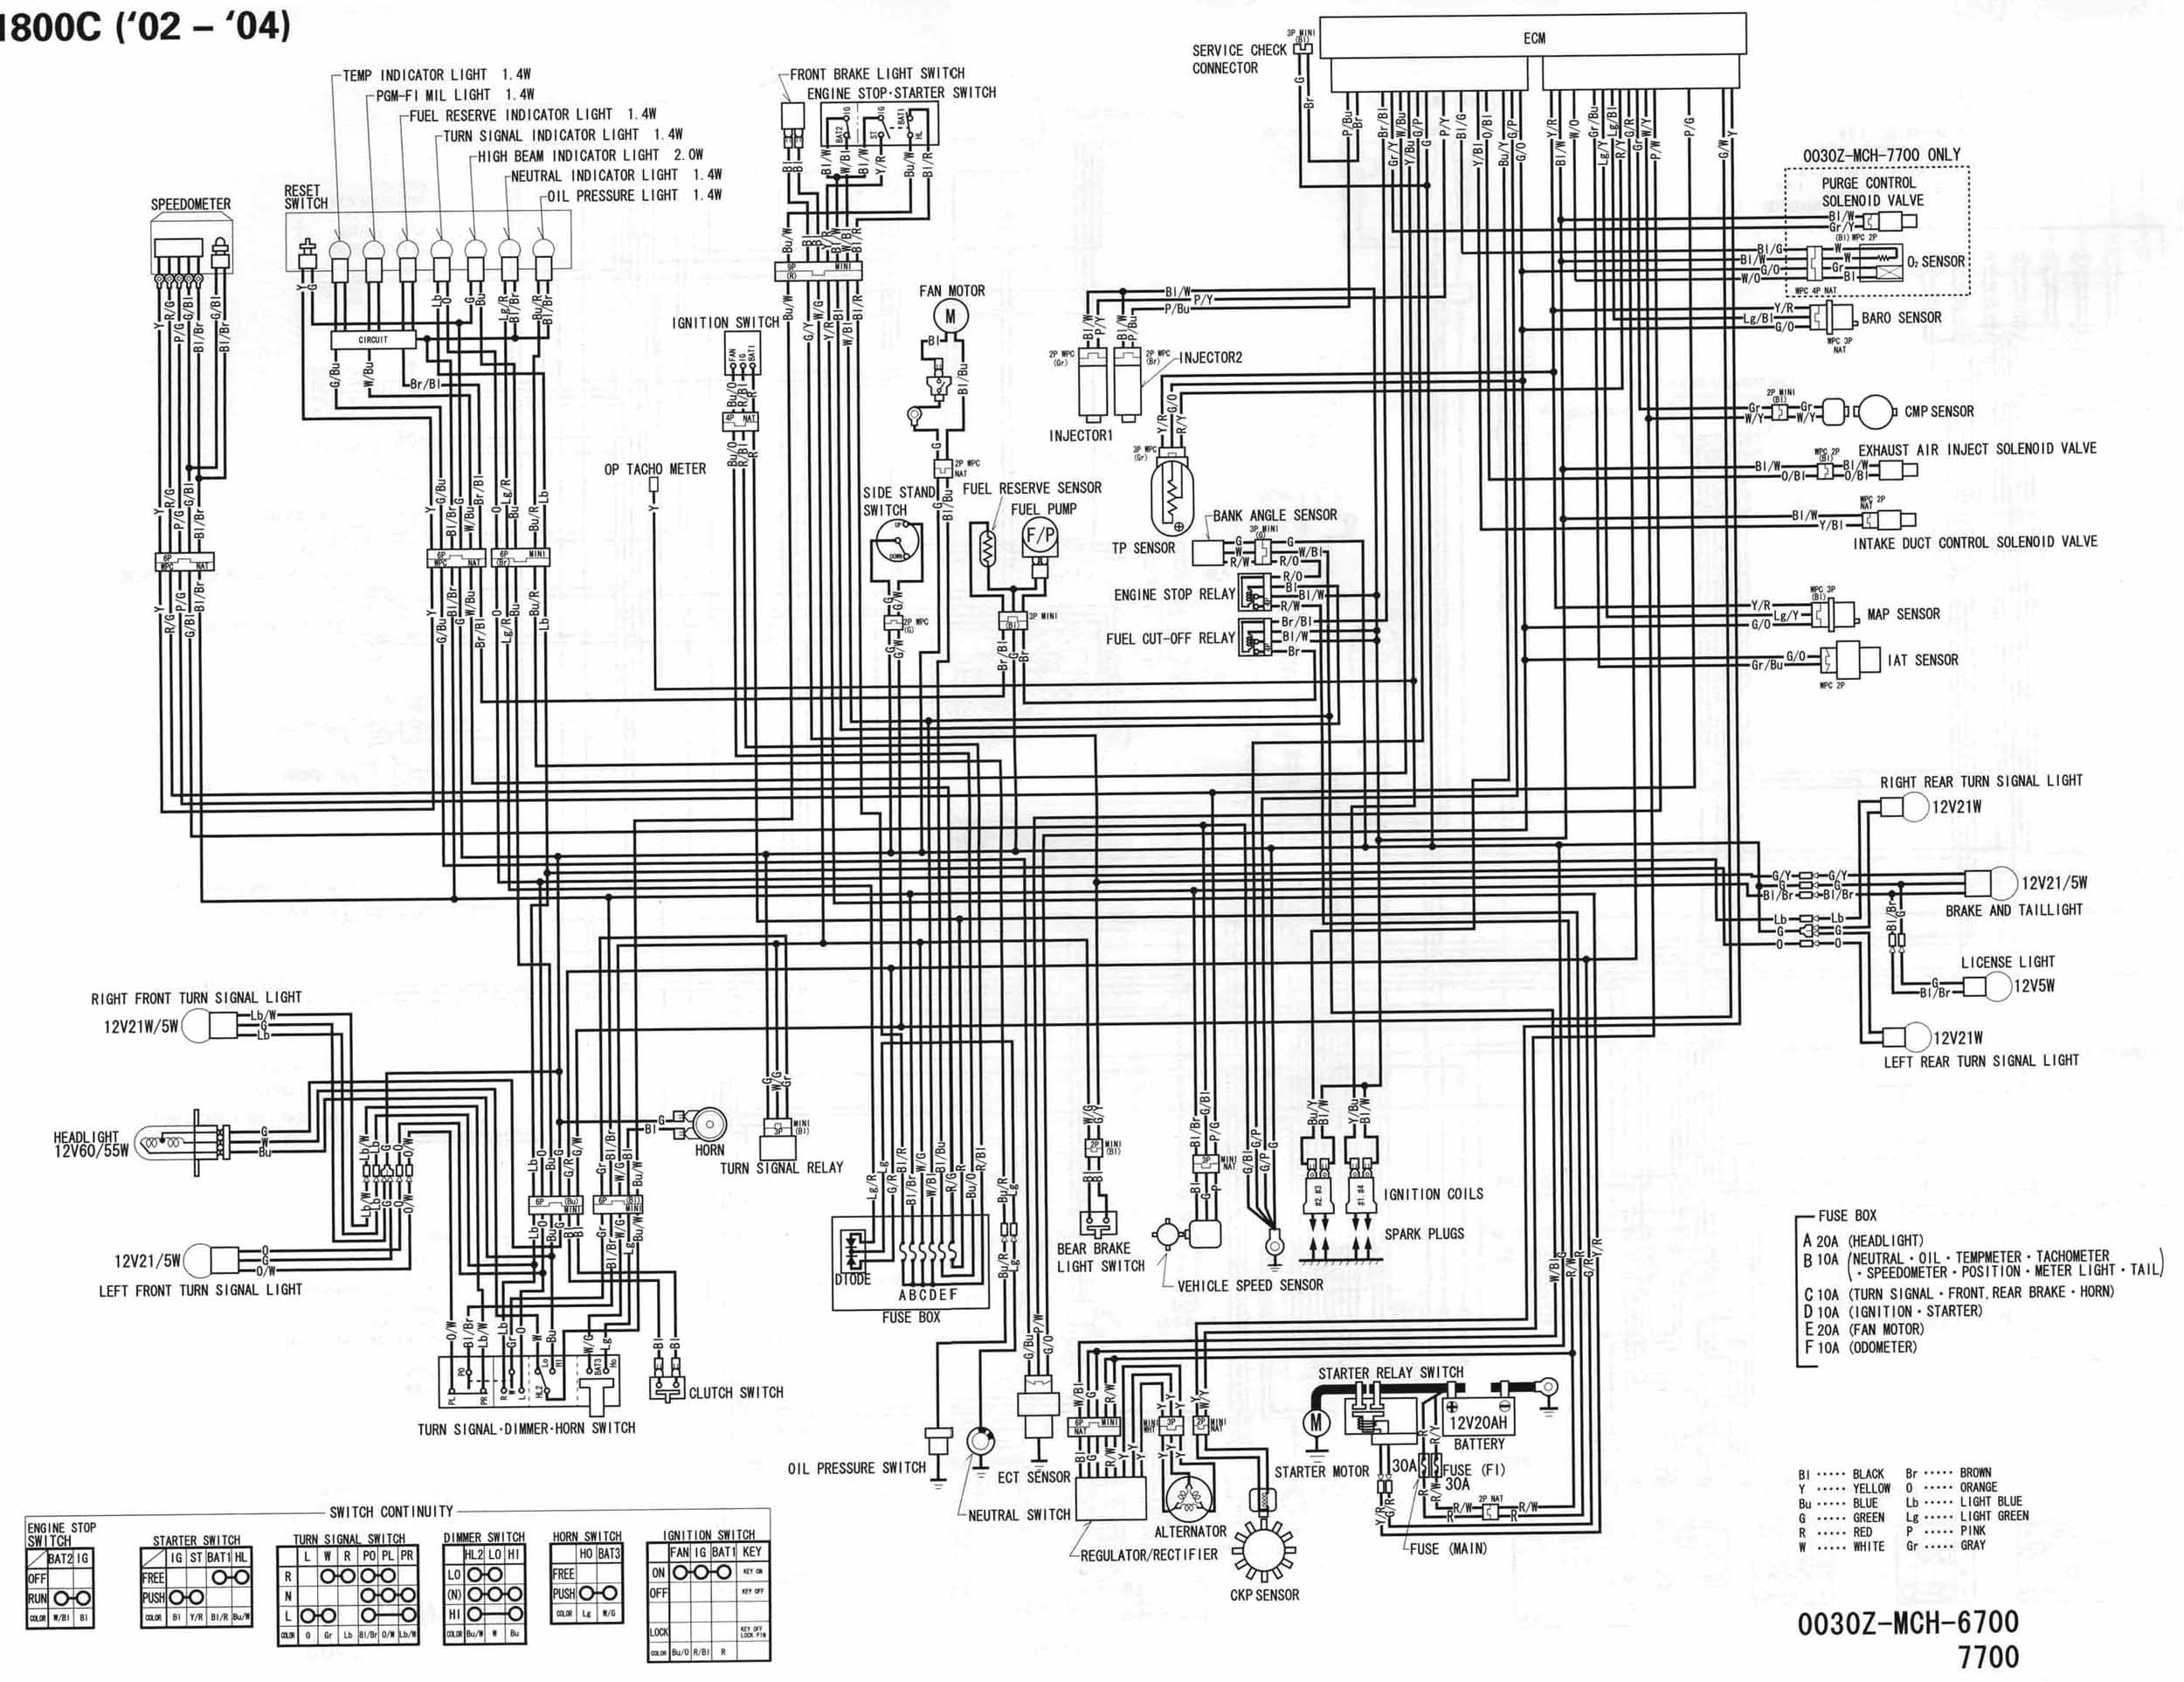 Honda Cb550 Electrical Schematic Diagram furthermore Motorcycle Wire Schematics moreover 1994 Honda Civic Wiring Diagram also 1992 Honda Nighthawk 750 Wiring Diagram additionally Honda Cb Motorcycle Wiring Diagram All About Diagrams Html. on honda cb 750 wiring diagram